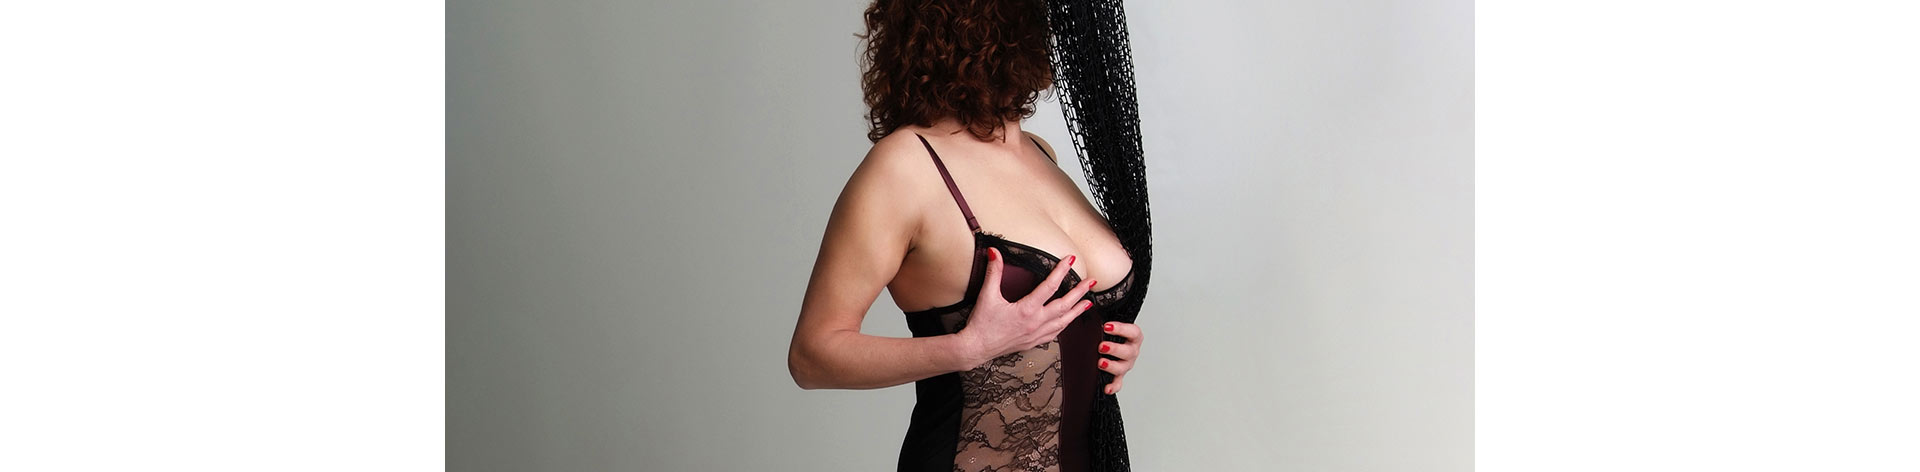 from Quinton massage gay shropshire